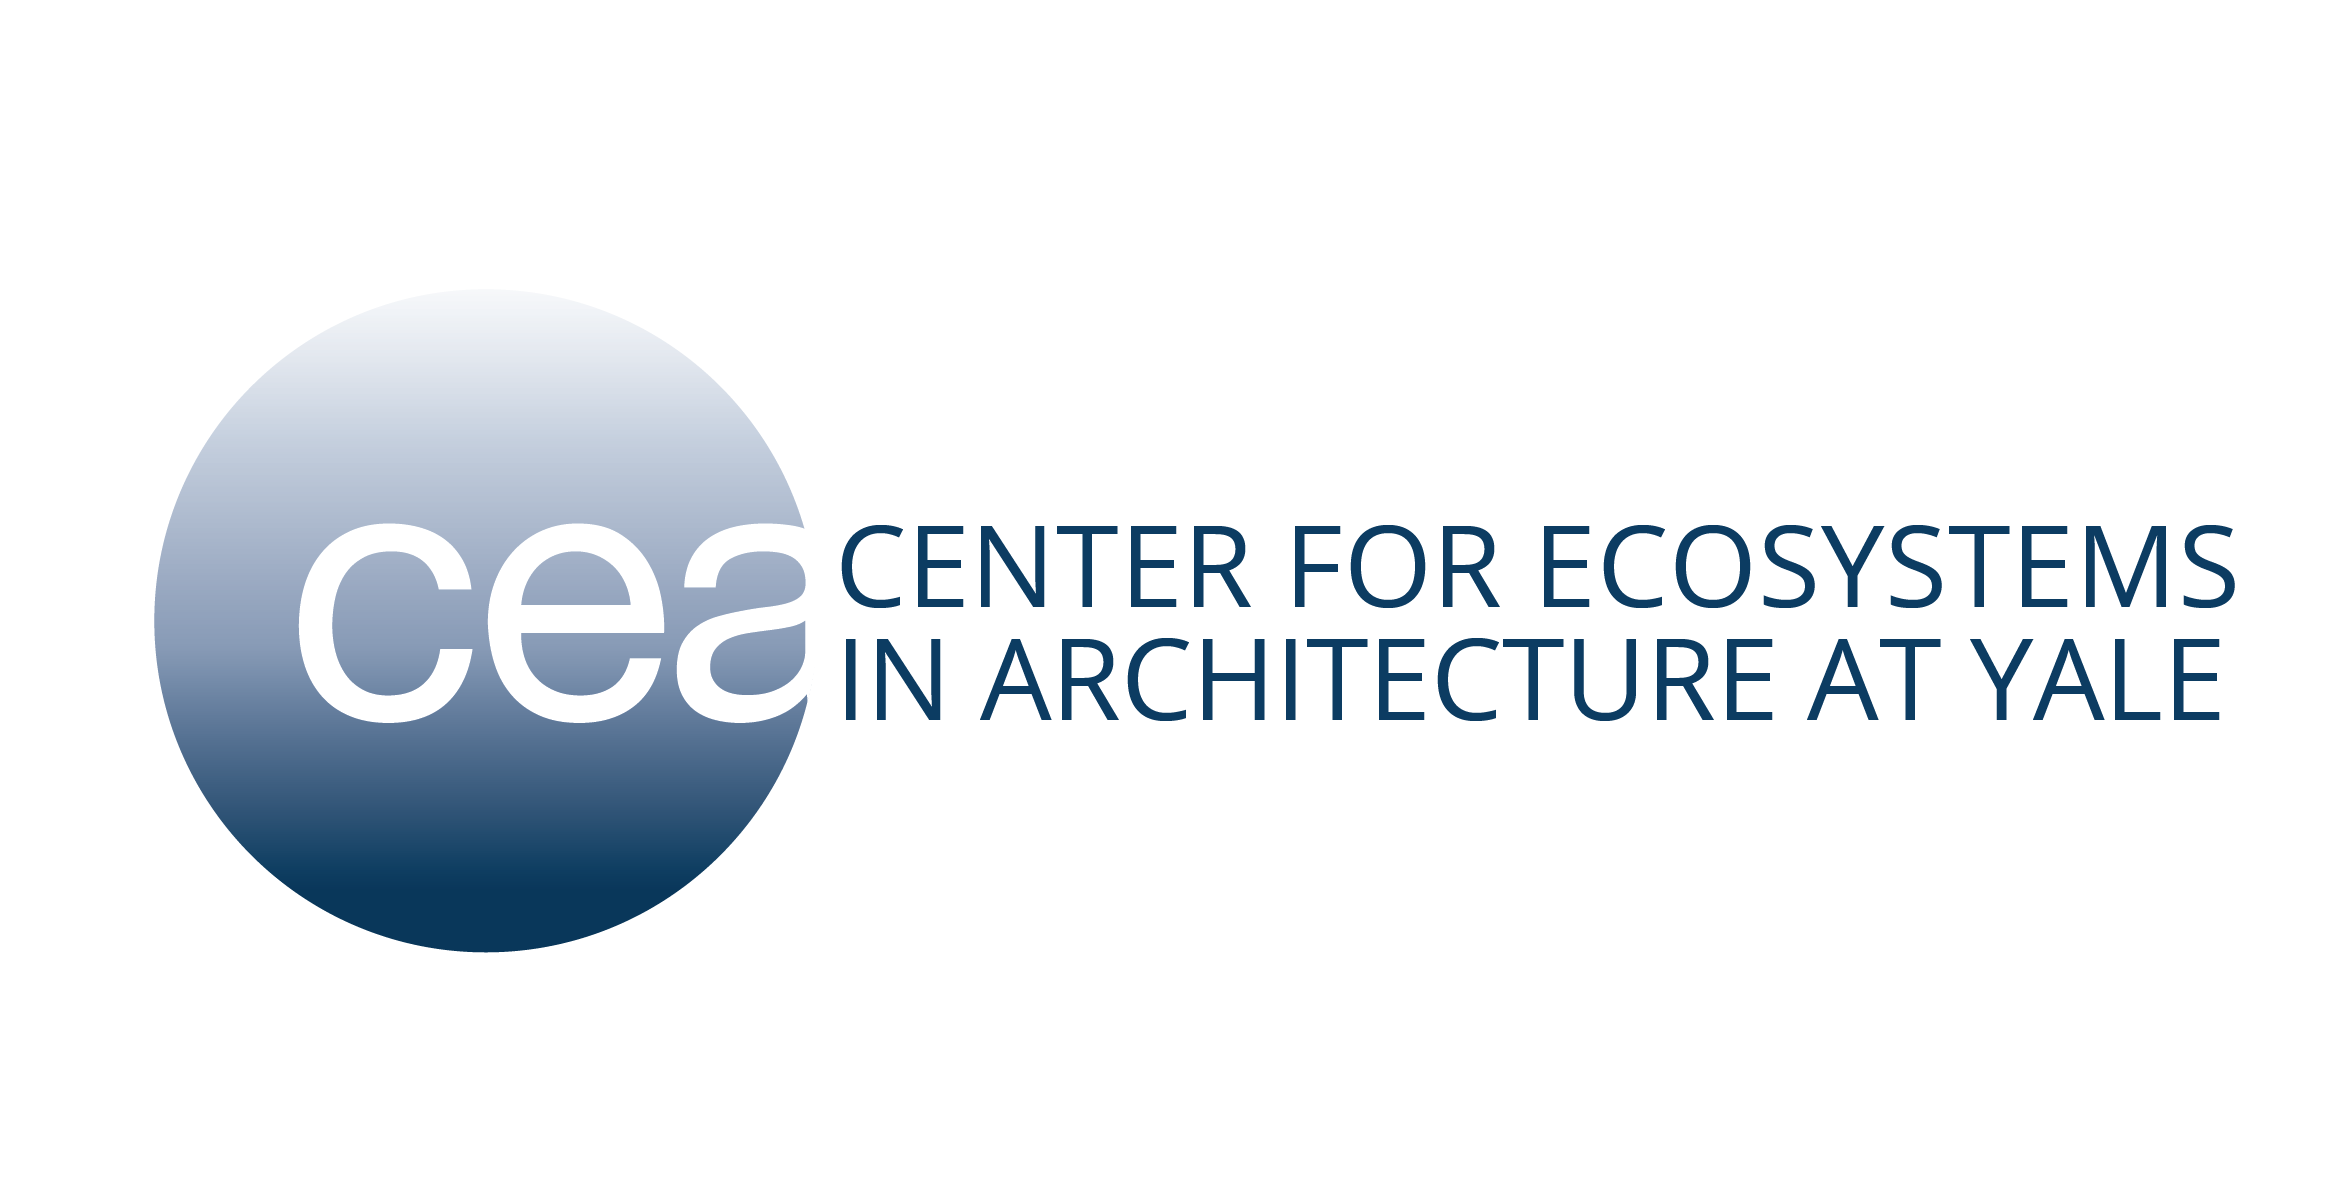 Center for Ecosystems in Architecture at Yale